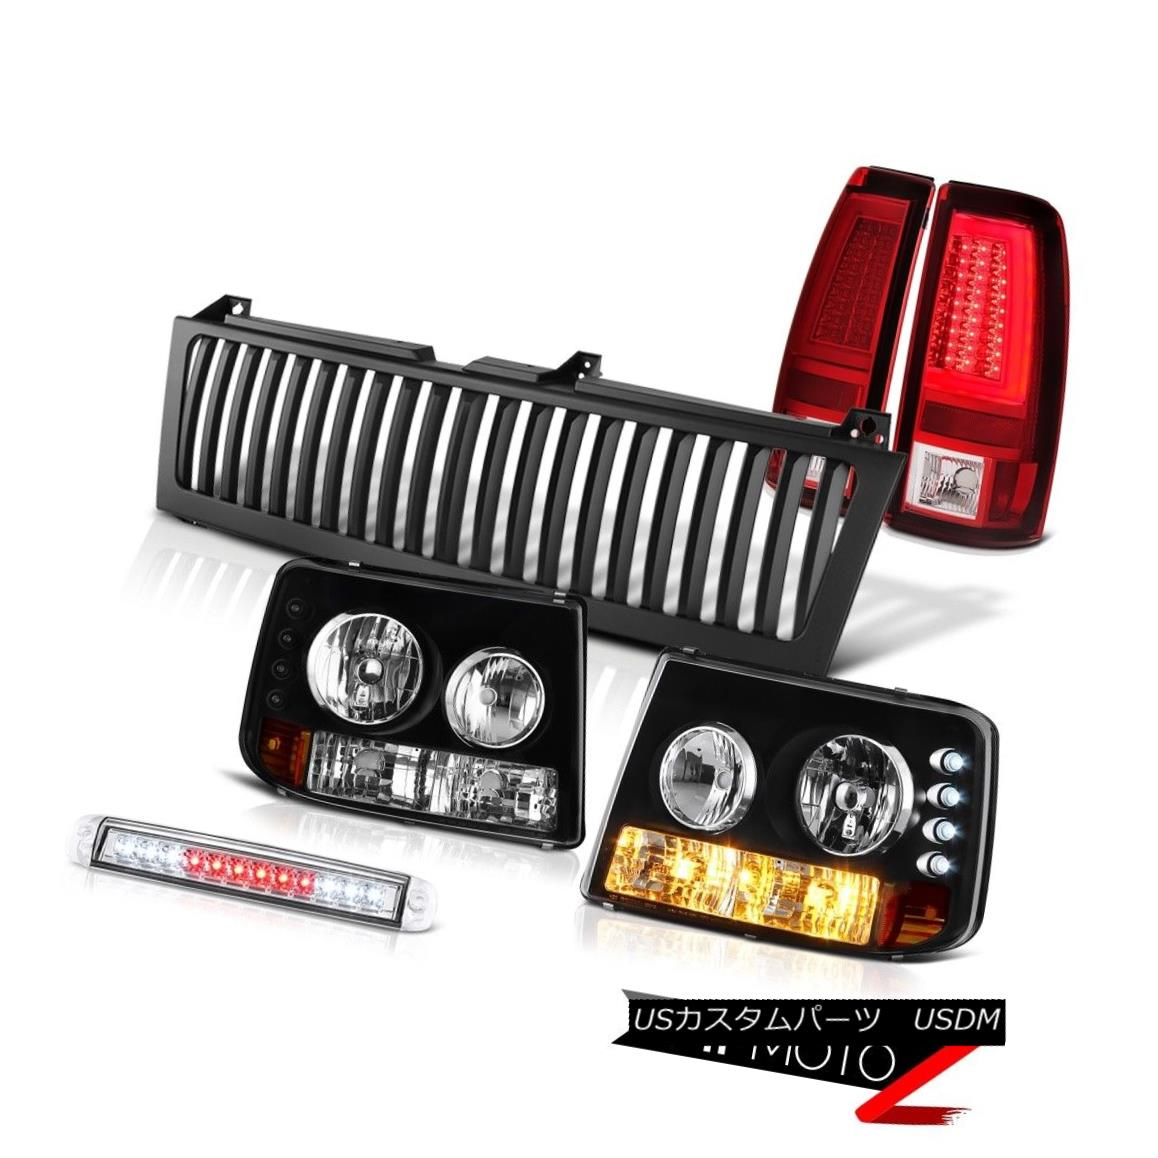 ヘッドライト 99 00 01 02 Silverado LTZ Rear Brake Lamps Vertical Grille Chrome 3rd Light LED 99 00 01 02 Silverado LTZリアブレーキランプ縦型グリルクローム第3ライトLED